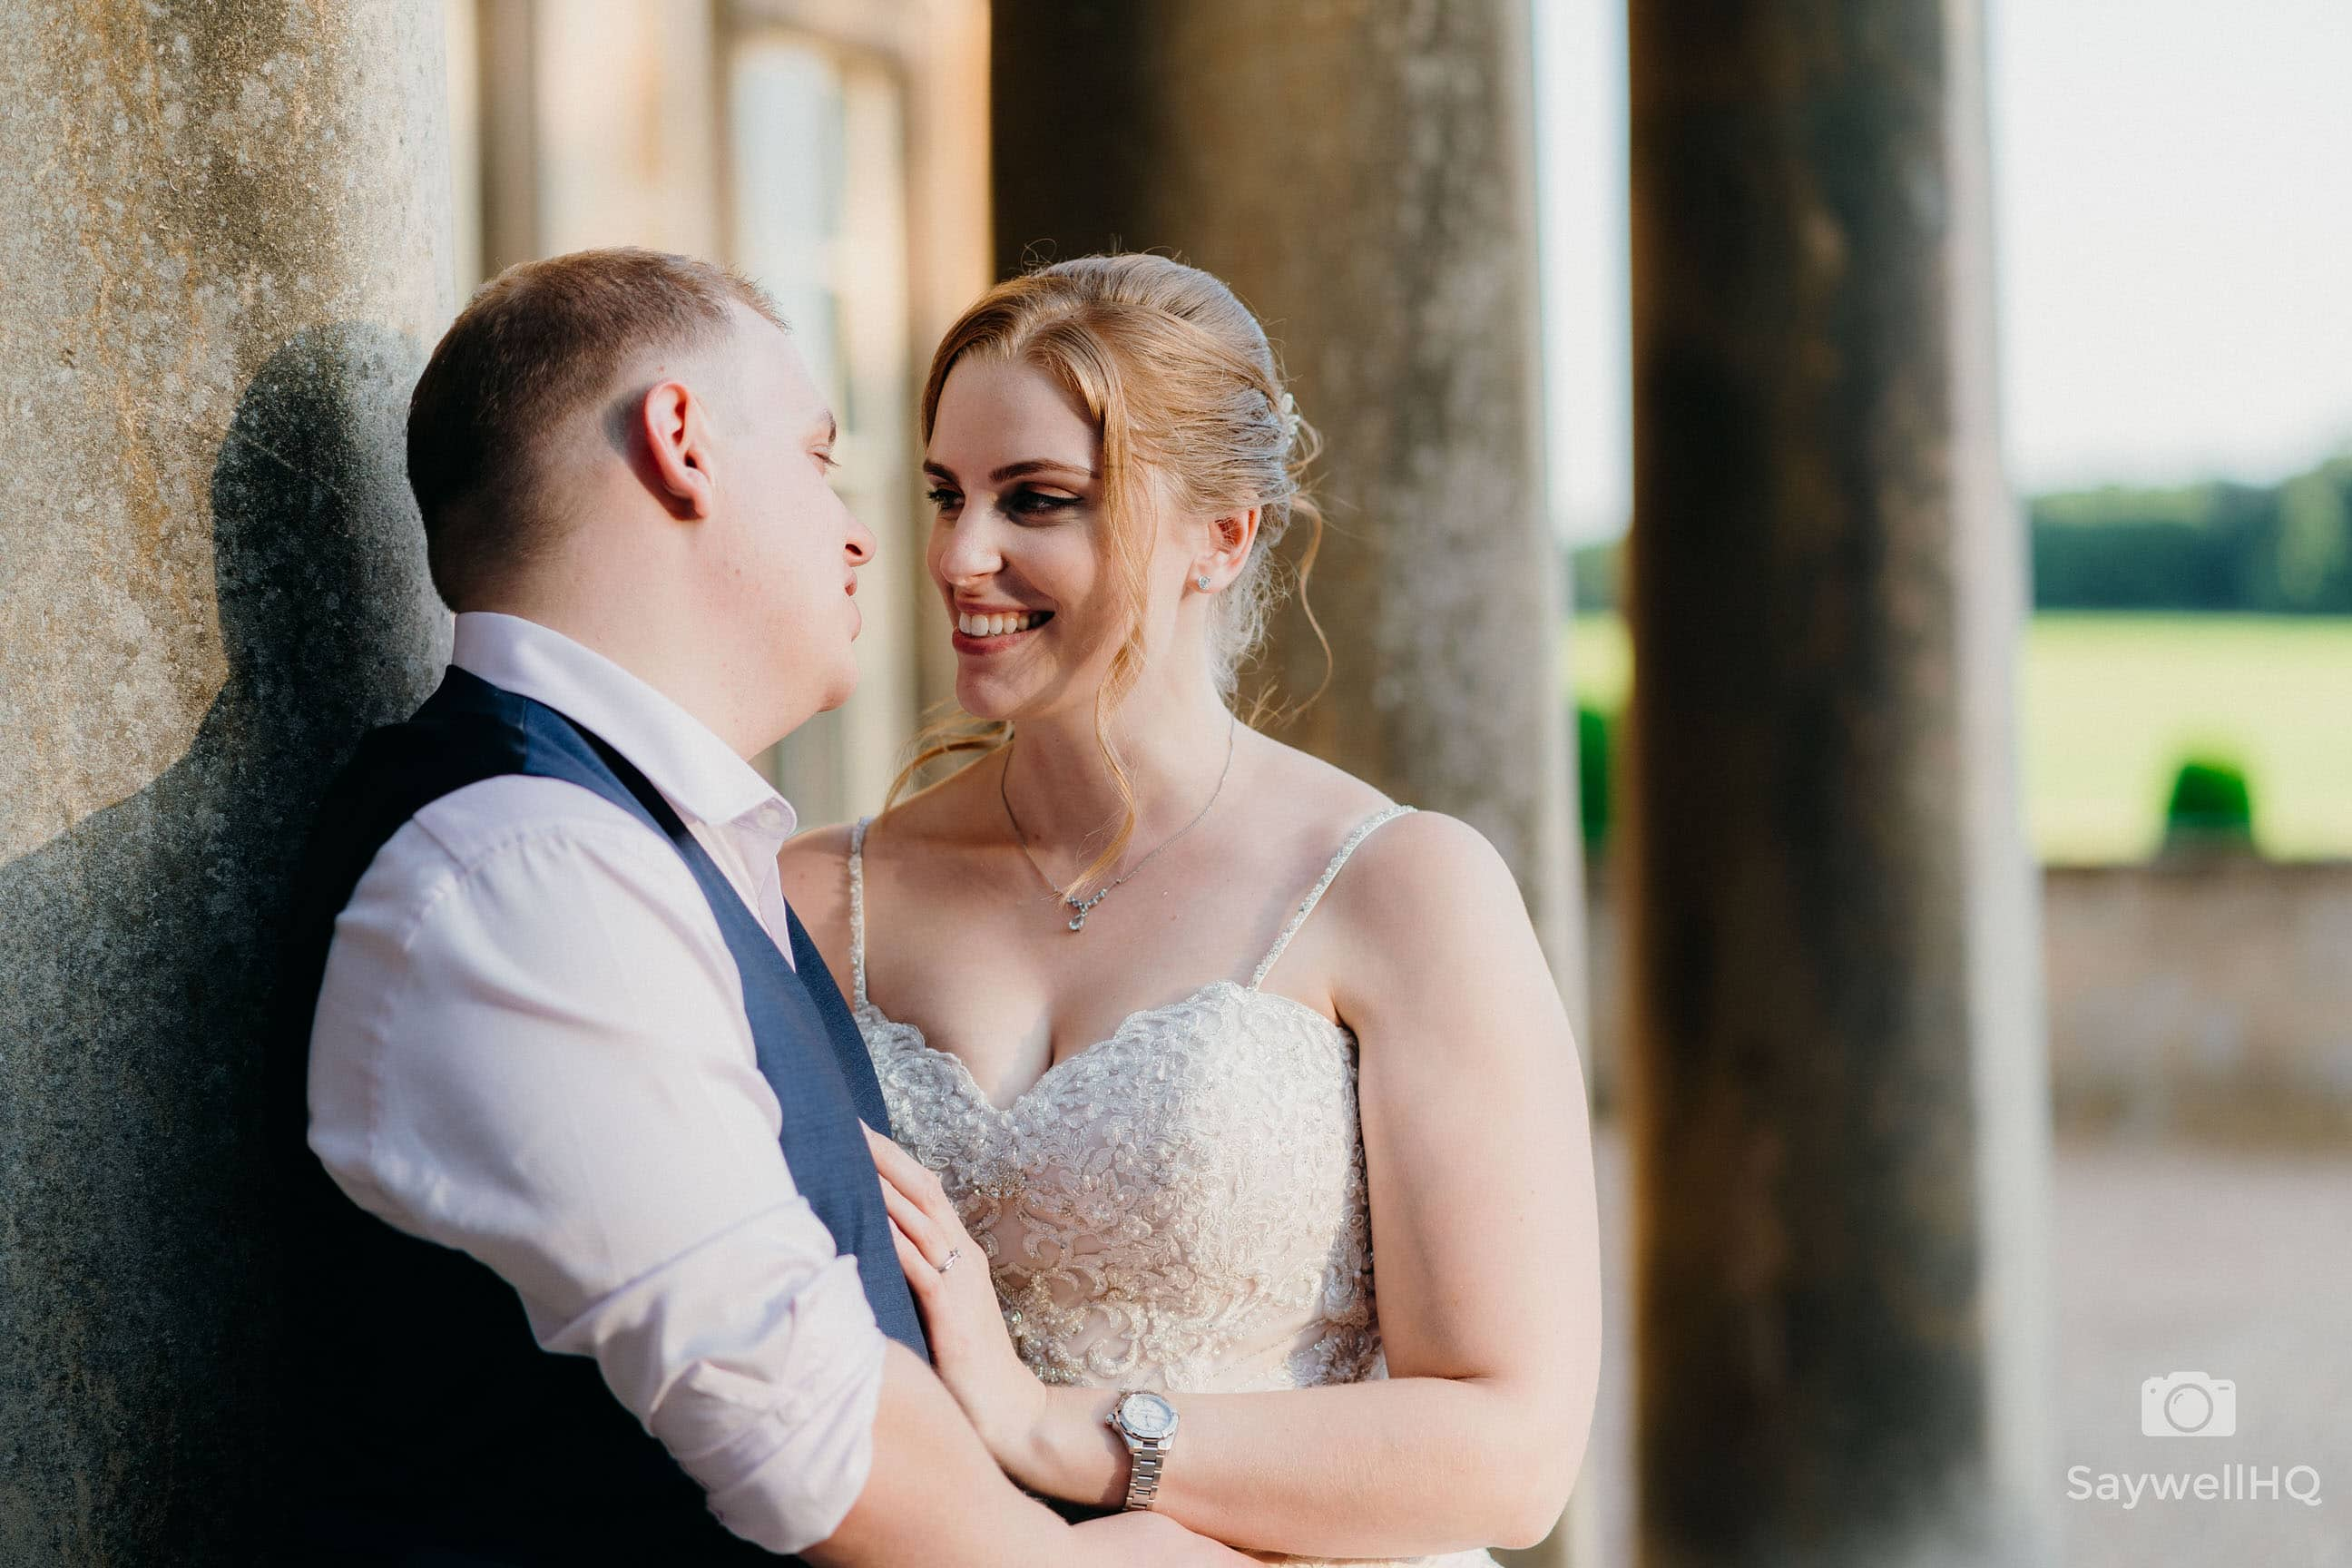 Prestwold Hall Wedding Photography Documentary Wedding Photographer - Bride and groom pose in nice light after their wedding at Prestwold Hall